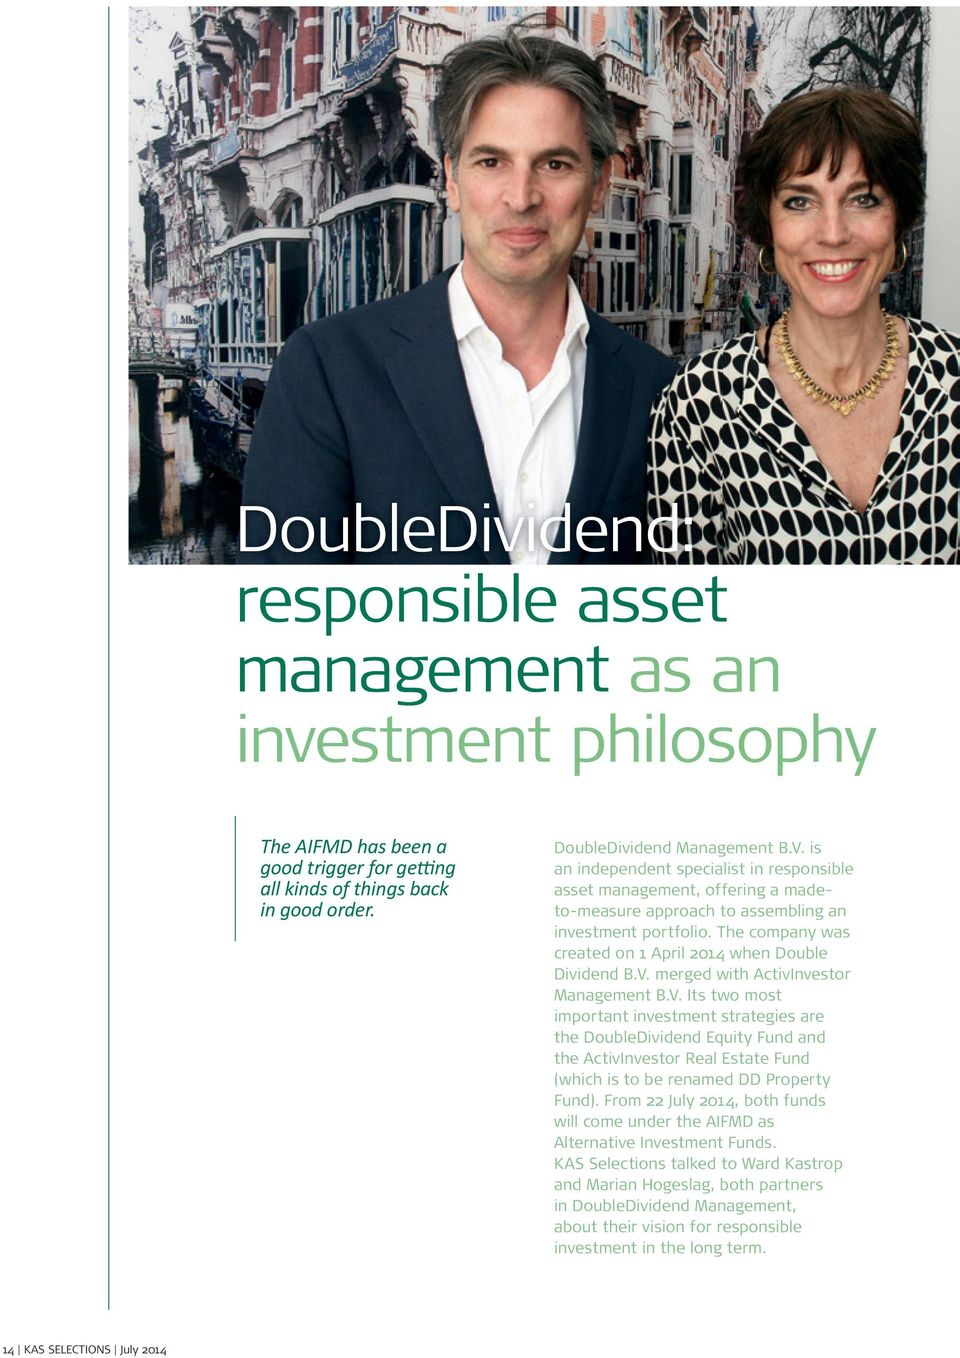 V. merged with ActivInvestor Management B.V. Its two most important investment strategies are the DoubleDividend Equity Fund and the ActivInvestor Real Estate Fund (which is to be renamed DD Property Fund).